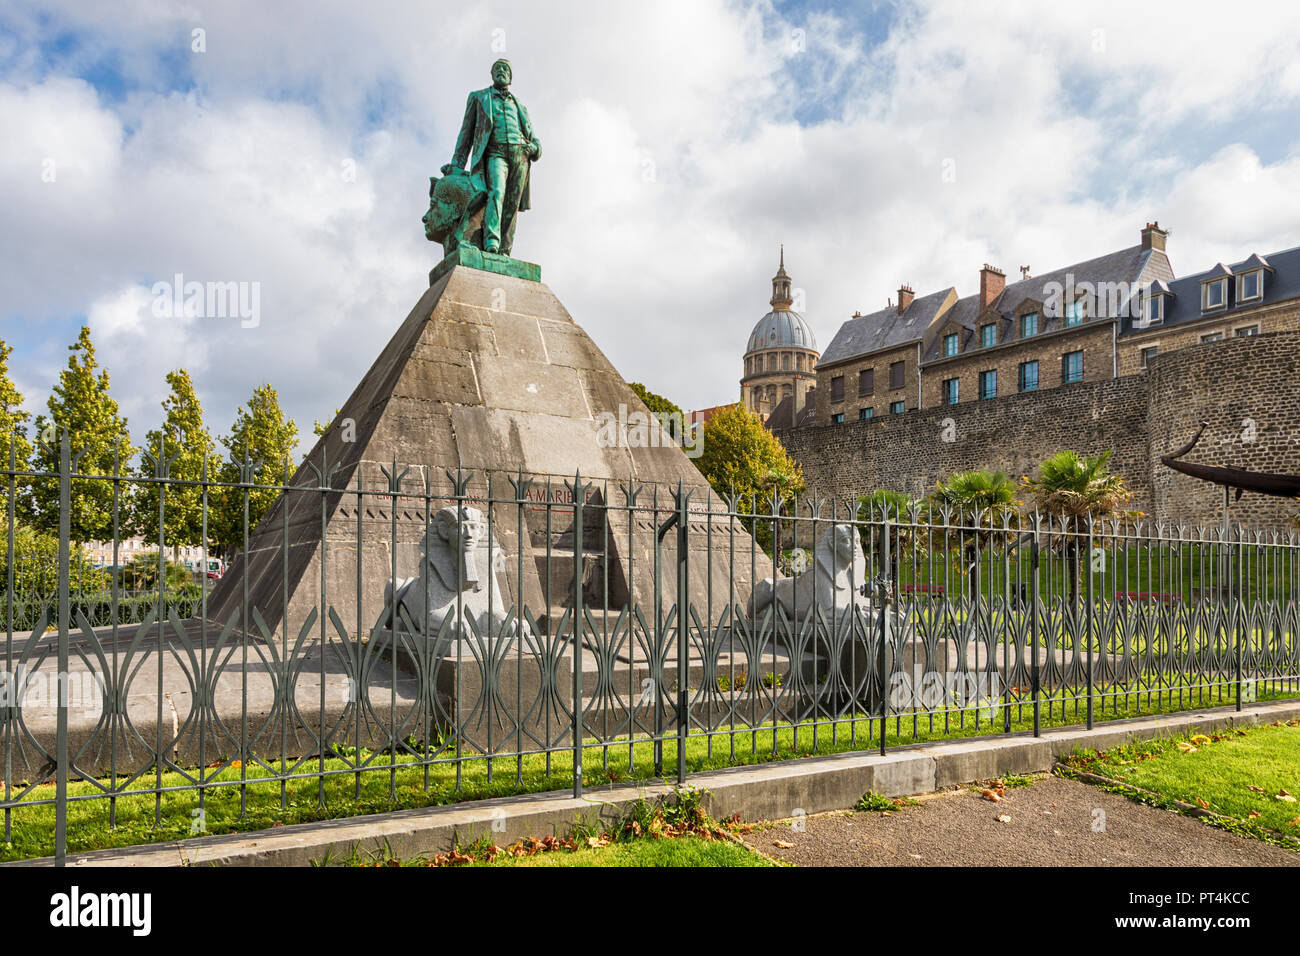 Bronze statue of archaeologist and egyptologist Auguste Mariette on pyramid at Boulogne-sur-Mer, France - Stock Image